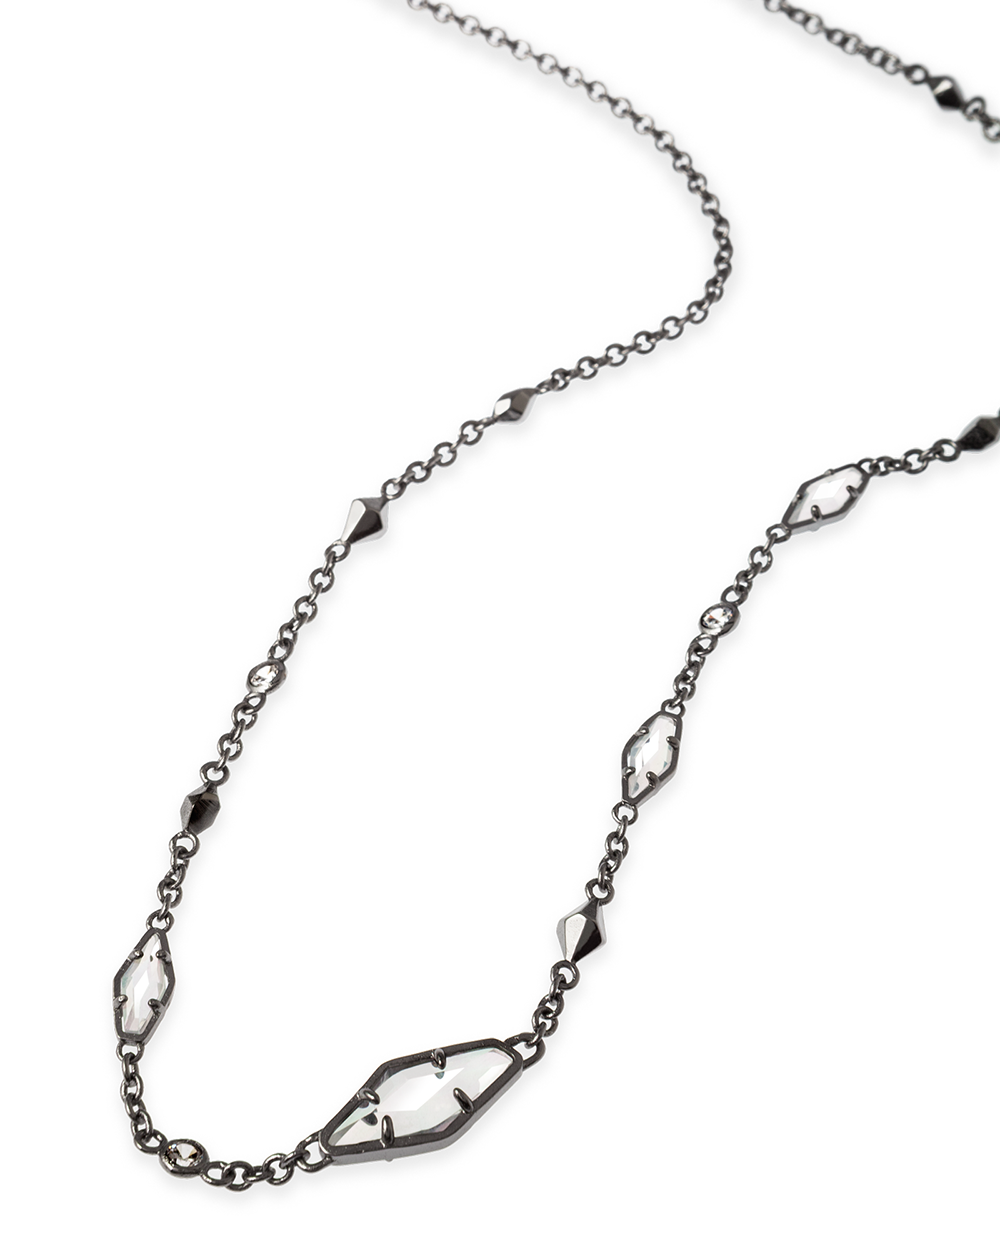 Kendra Scott Debra Choker Necklace In Hematite - Kendra Scott Jewelry Wishlist